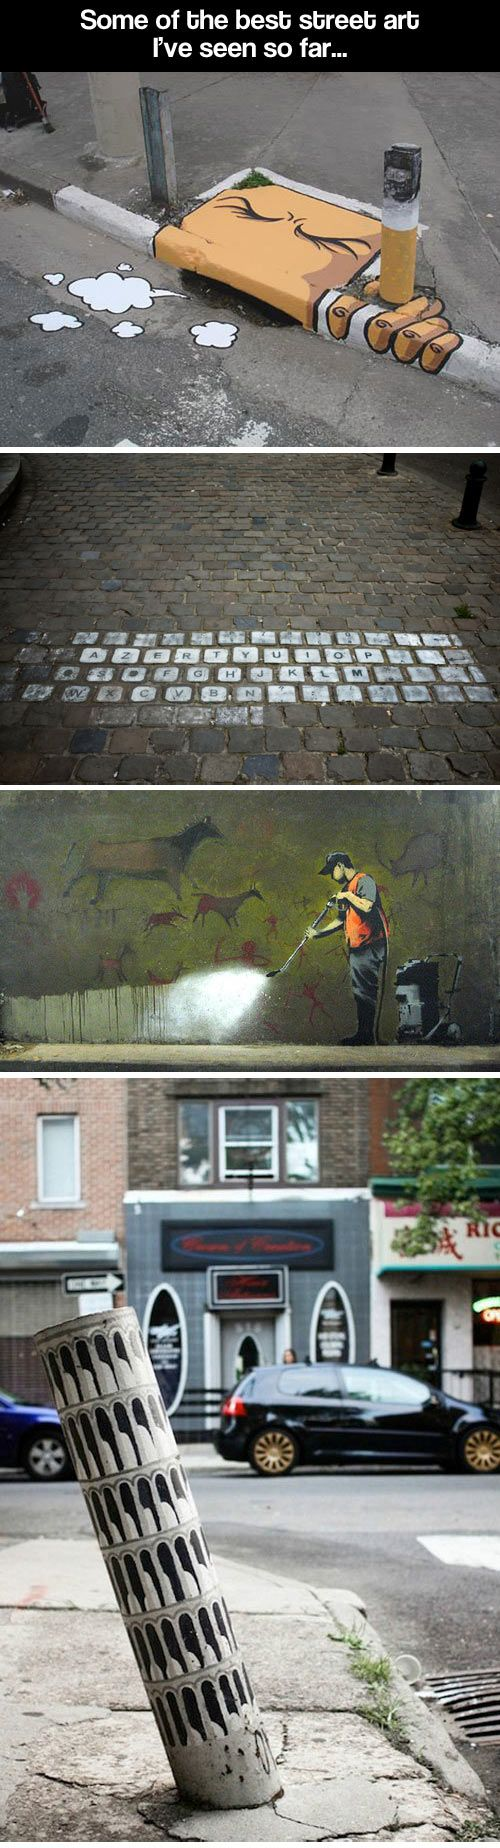 Some of the best street art ...